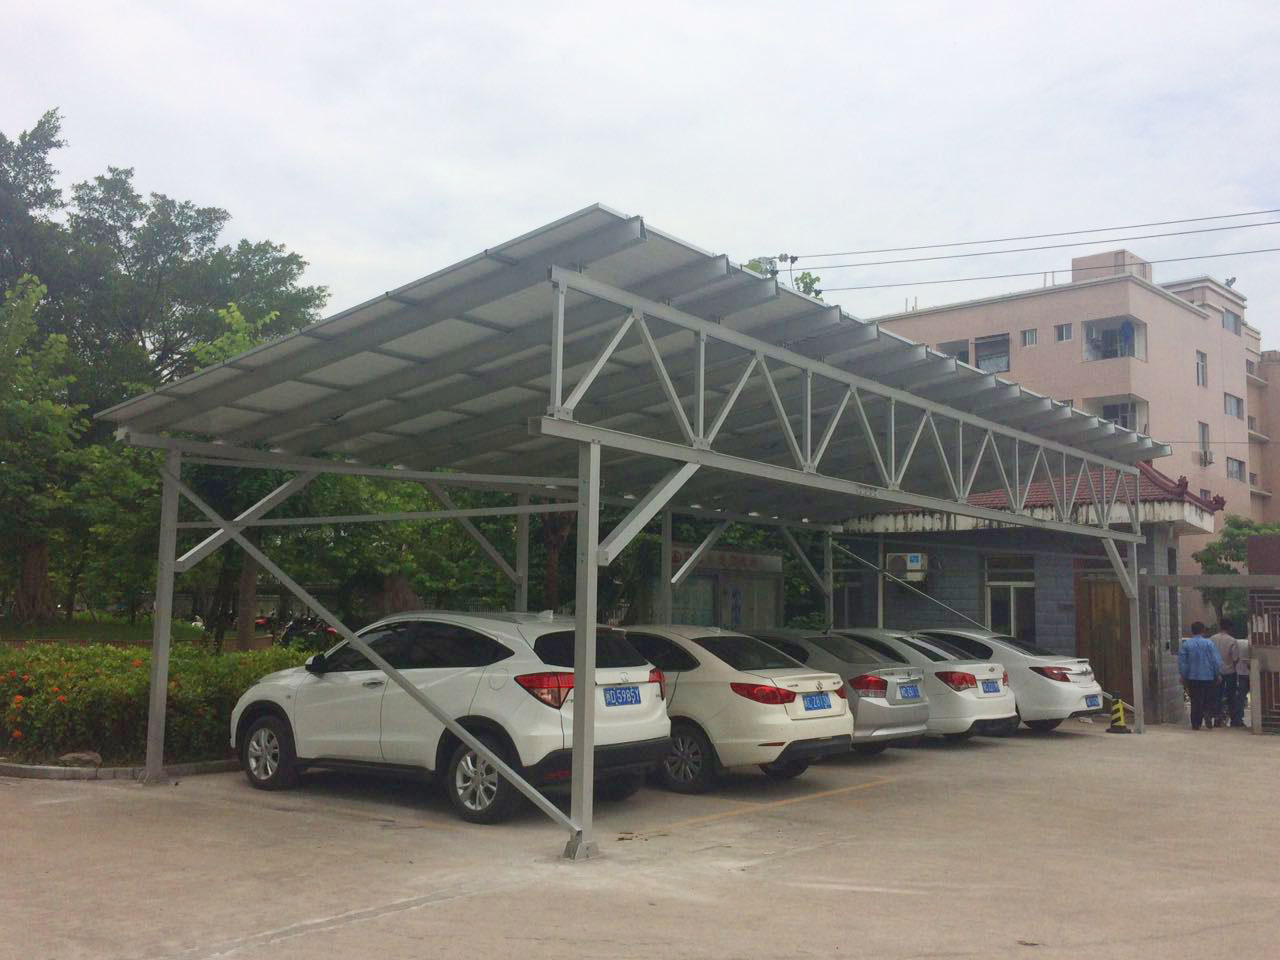 The 12.96KW solar carport covers an area of 83.13 square meters with panel facing southwest is expected to generate 15000 kilowatt annually. & Solar Carport Appears Inside Antaisolar Factory